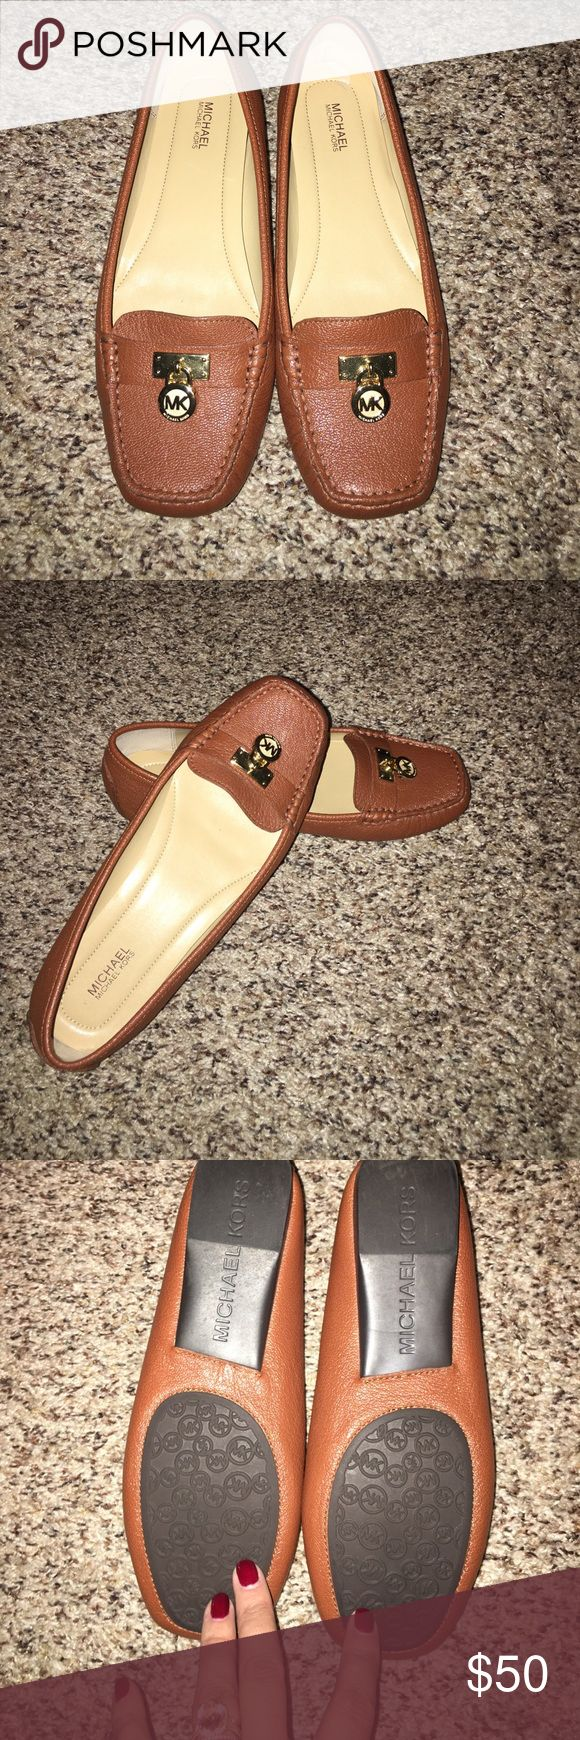 Michael Kors Flats Camel Color Leather Women's 8 Michael Kors Flats Camel Color Leather Women's Size 8. ADORABLE, bought them and wore them for 4 hours but they are just a tad too tight and of course I can not return them or exchange them once worn. They are in perfect condition. Smoke free home and gently stored. MICHAEL Michael Kors Shoes Flats & Loafers